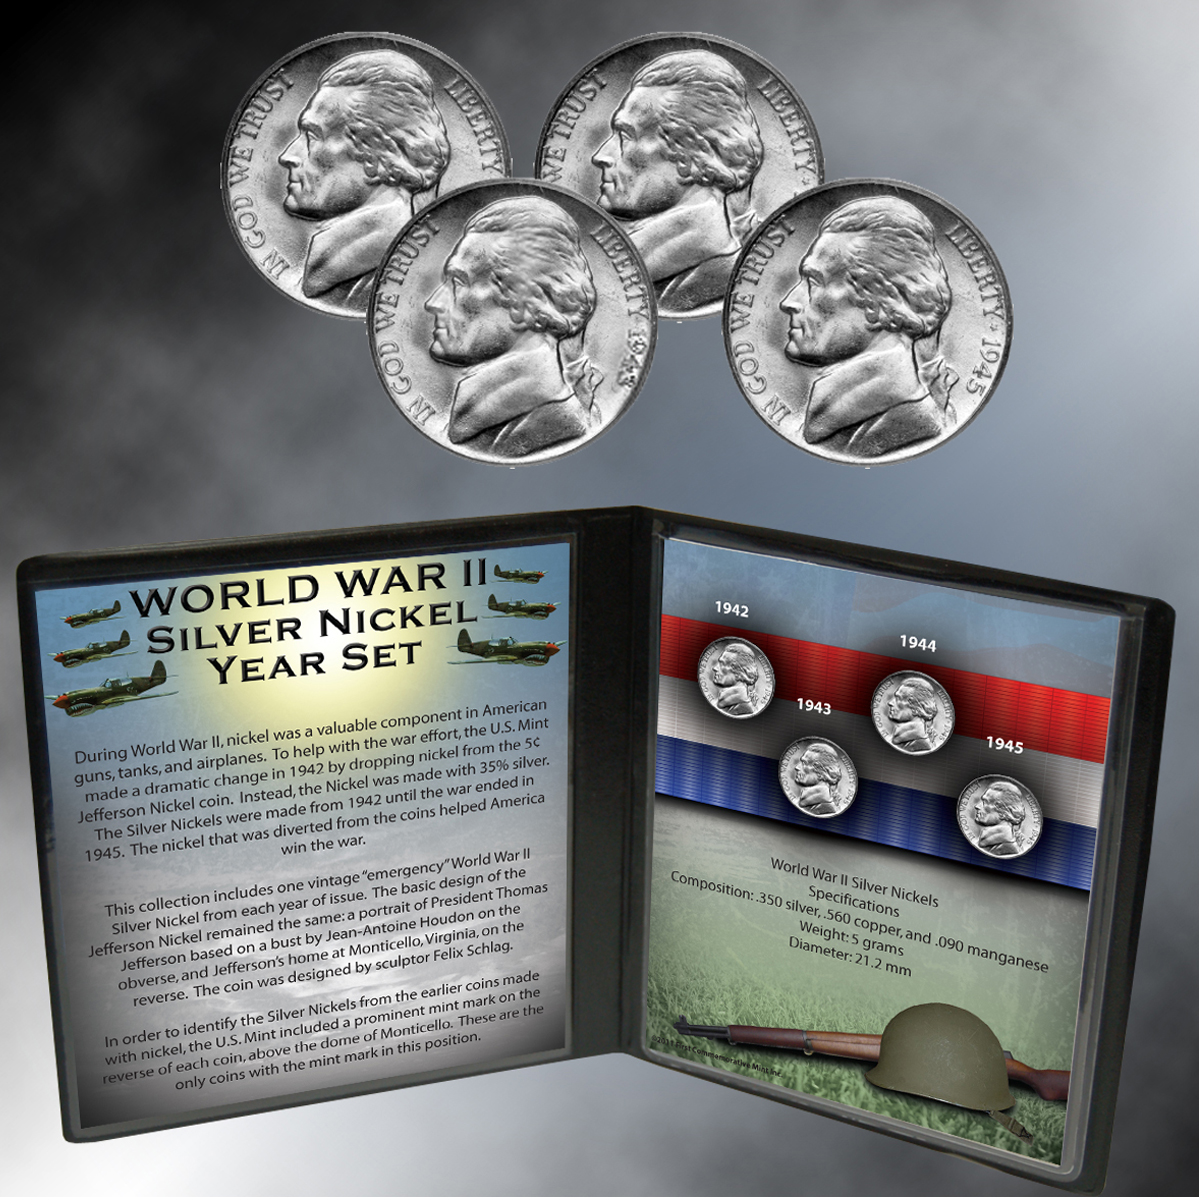 WWII Silver Nickel Year Set